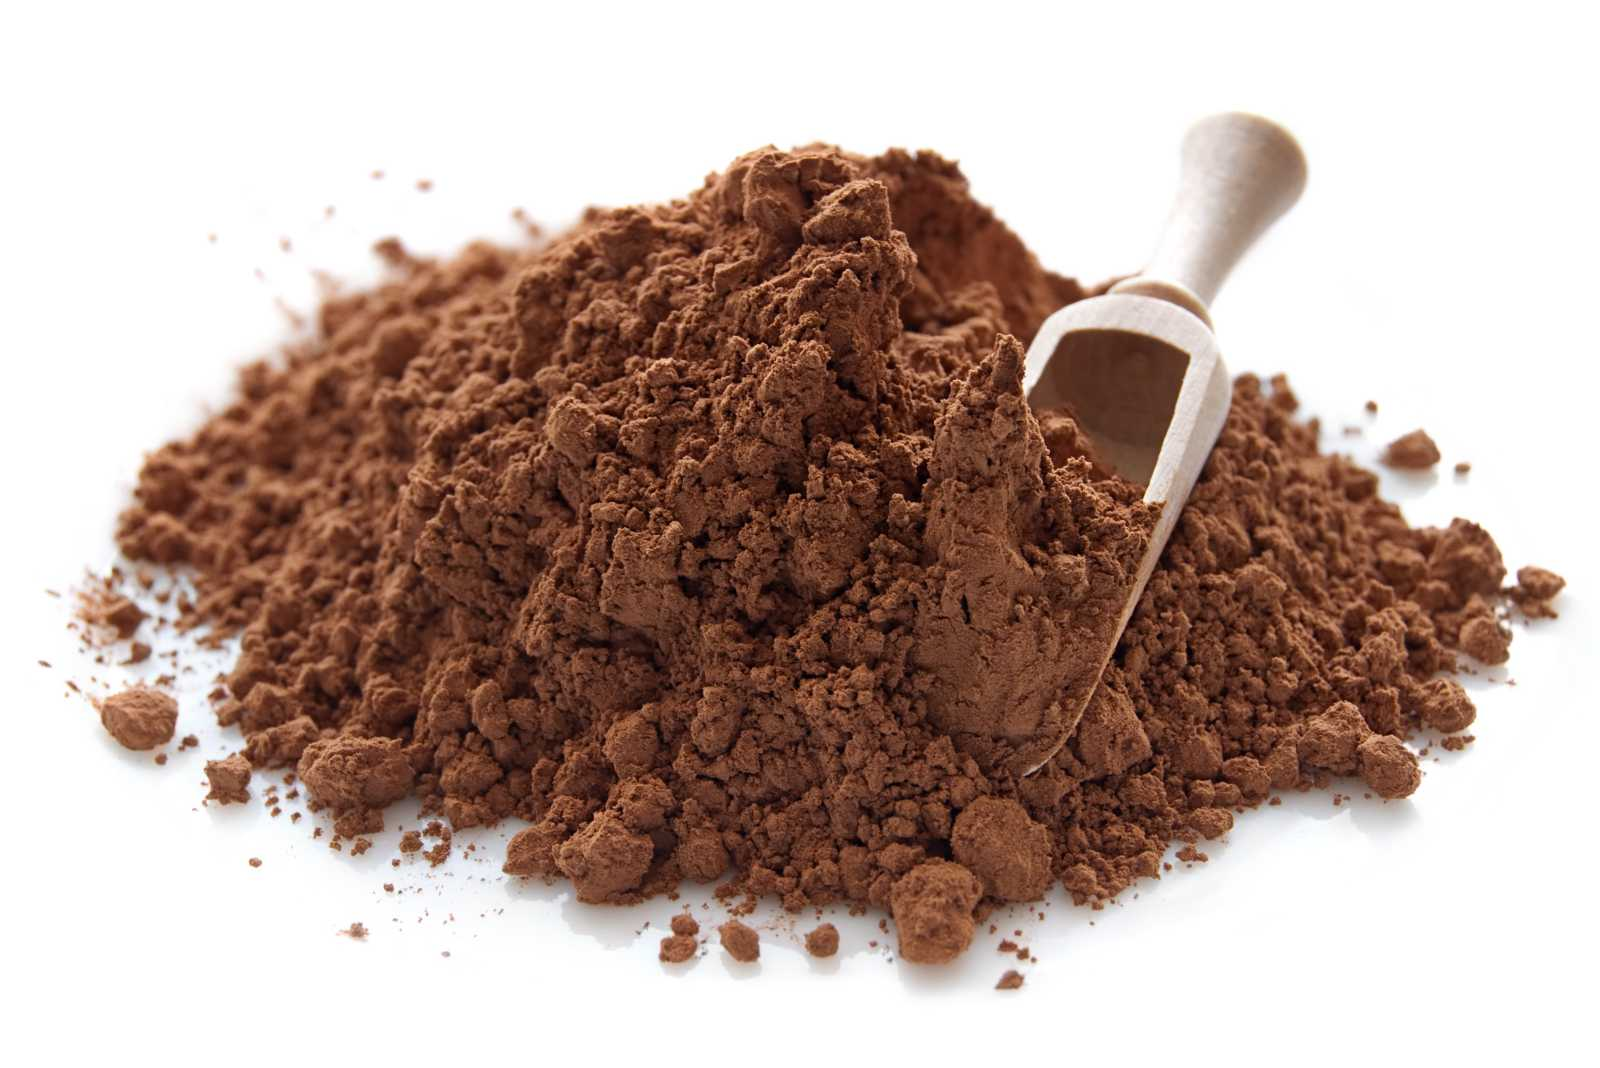 Chocolate Powder image